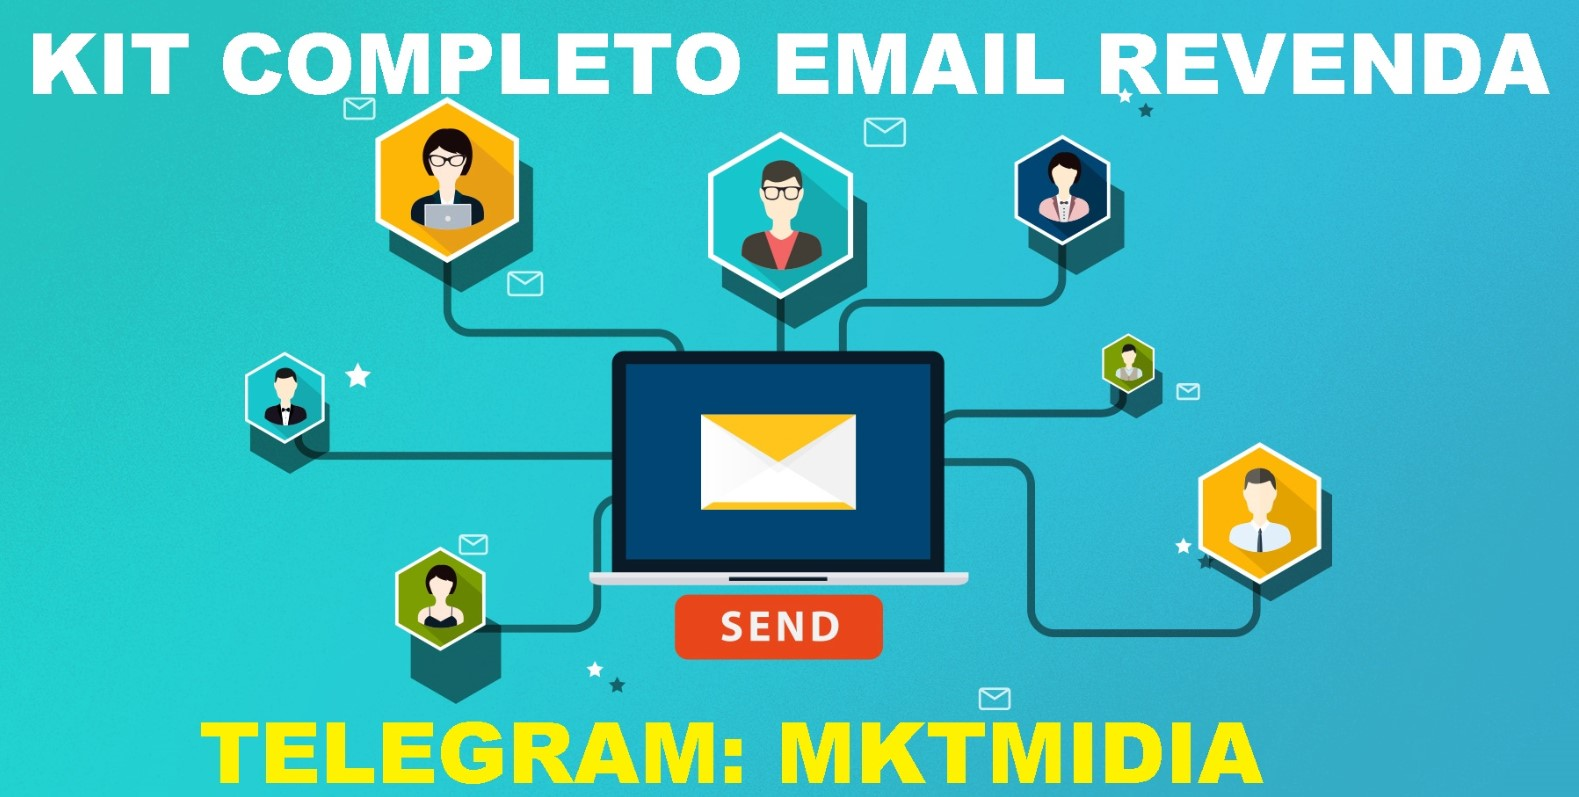 Kit Completo Email Marketing Revenda